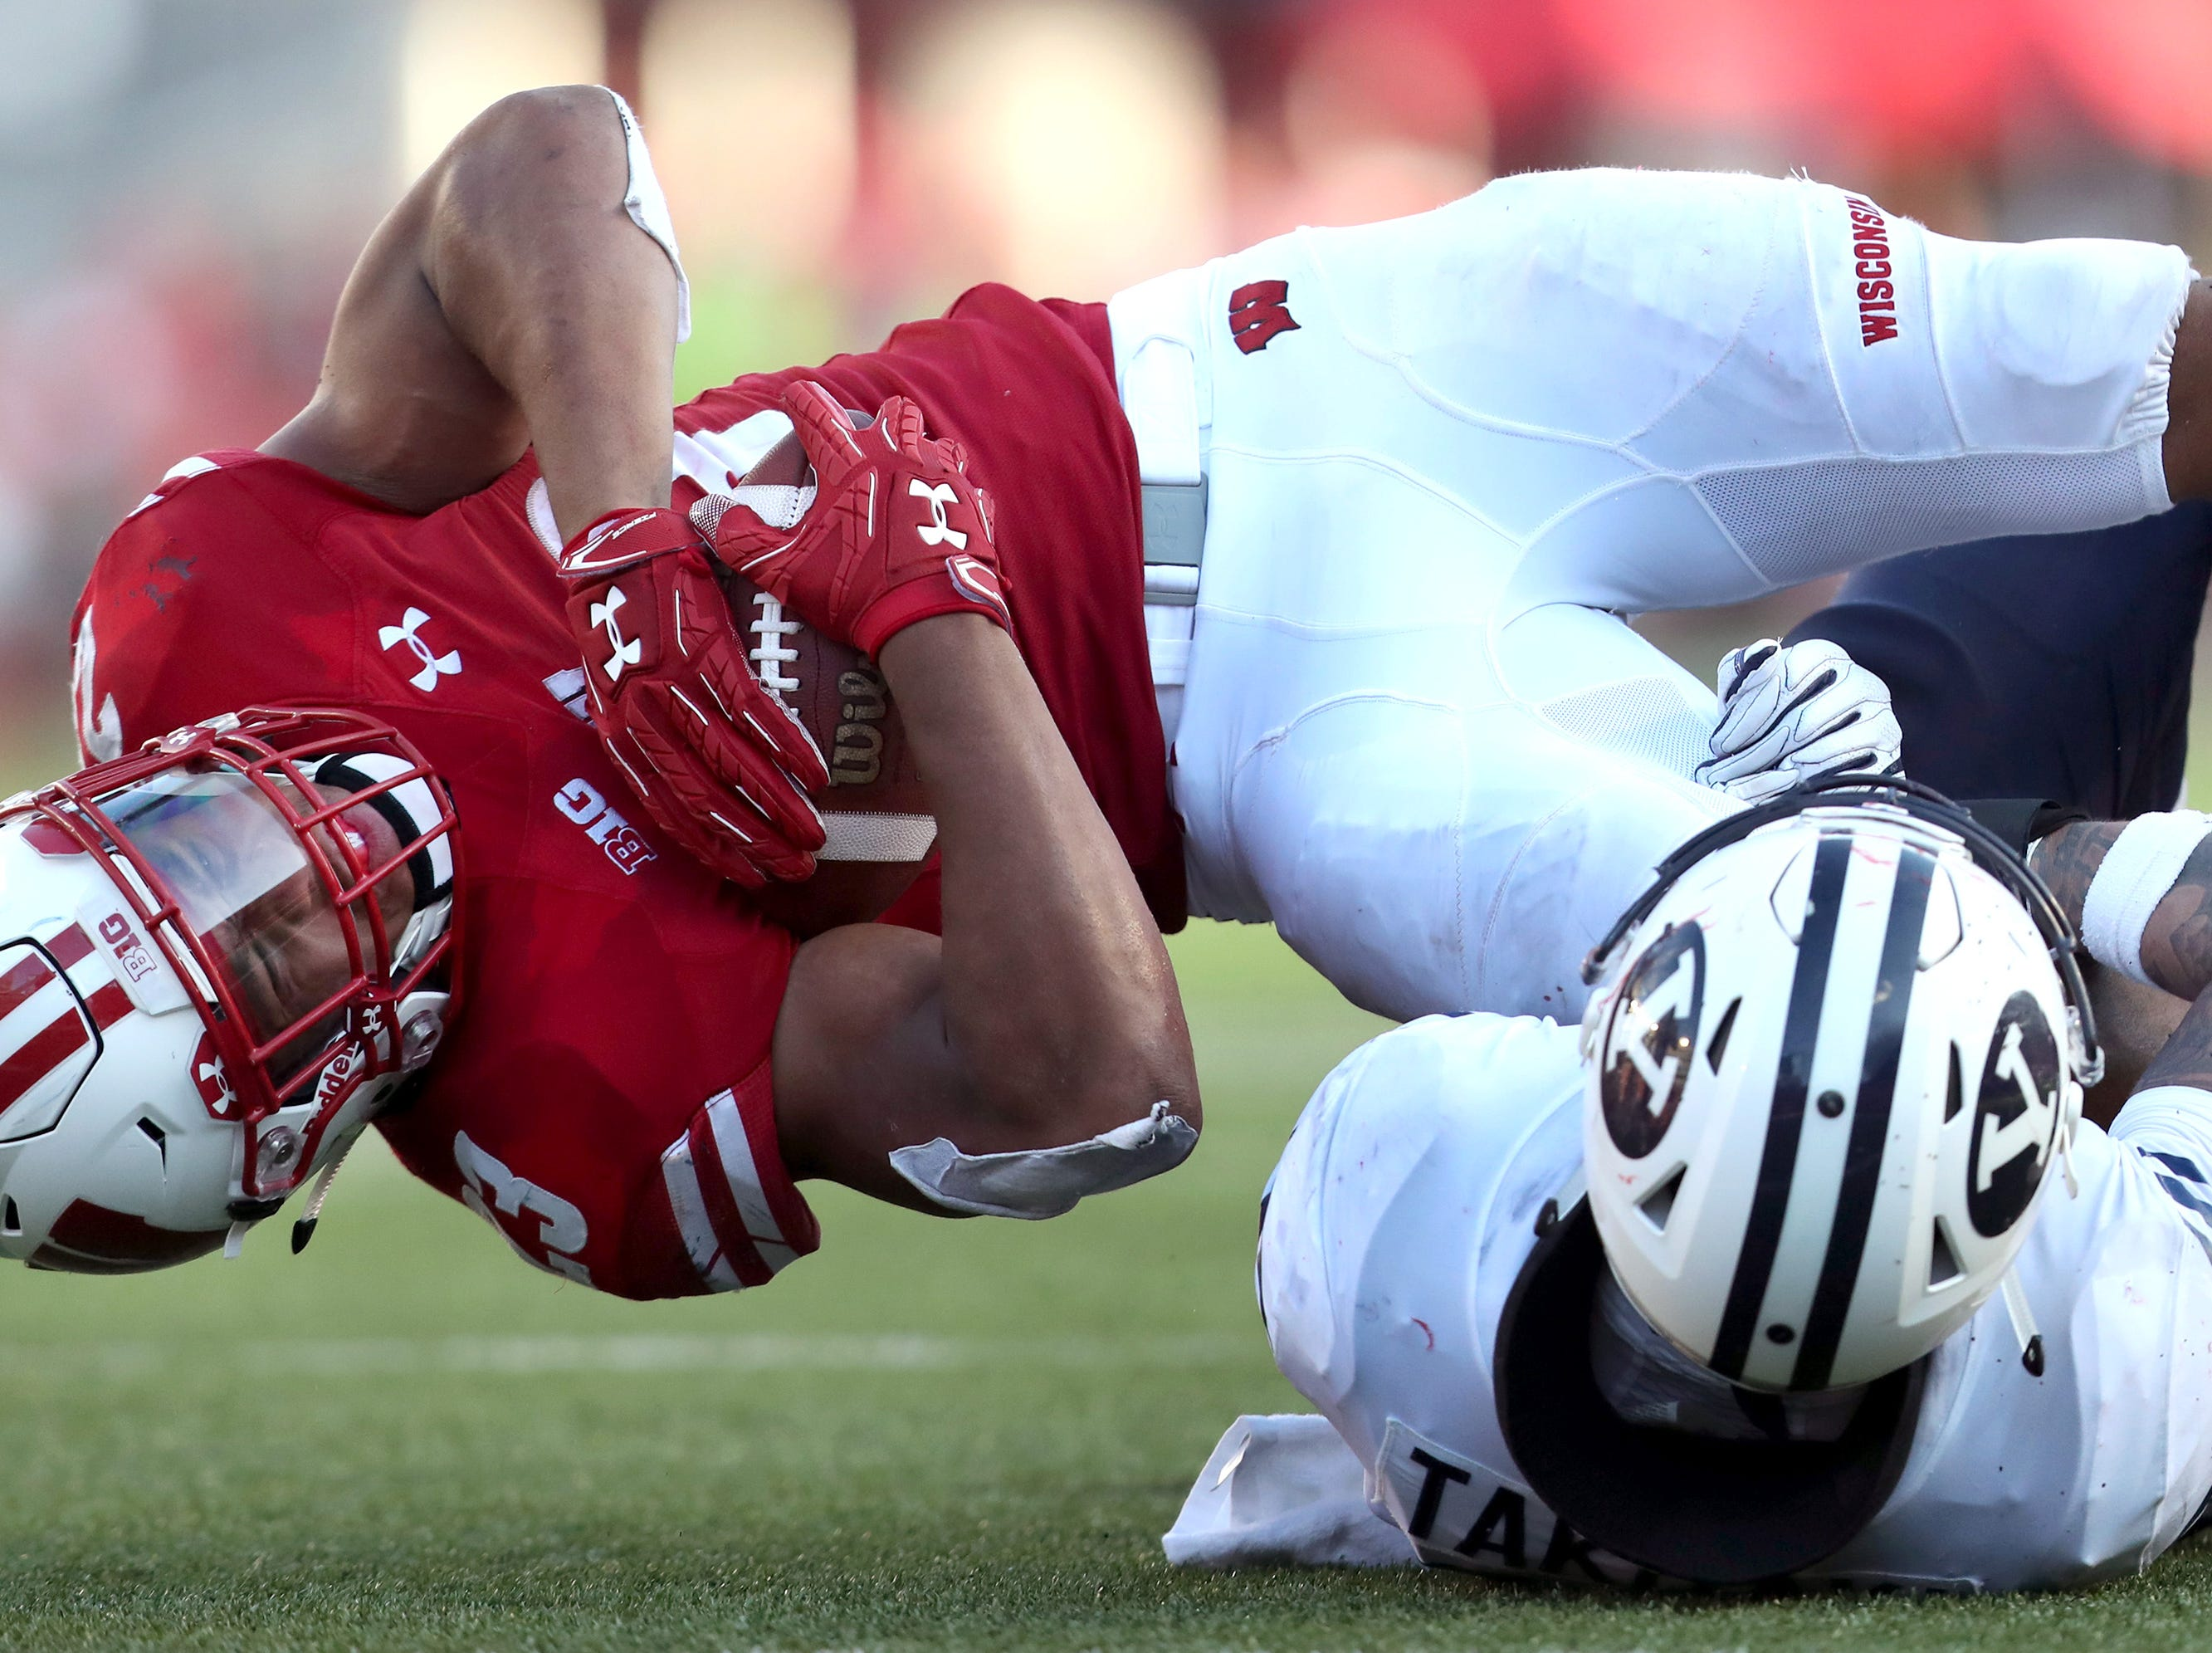 Wisconsin Badgers running back Jonathan Taylor (23) is brought down by Brigham Young Cougars linebacker Sione Takitaki (16) Saturday, Sept. 15, 2018, at Camp Randall Stadium in Madison, Wis.Danny Damiani/USA TODAY NETWORK-Wisconsin